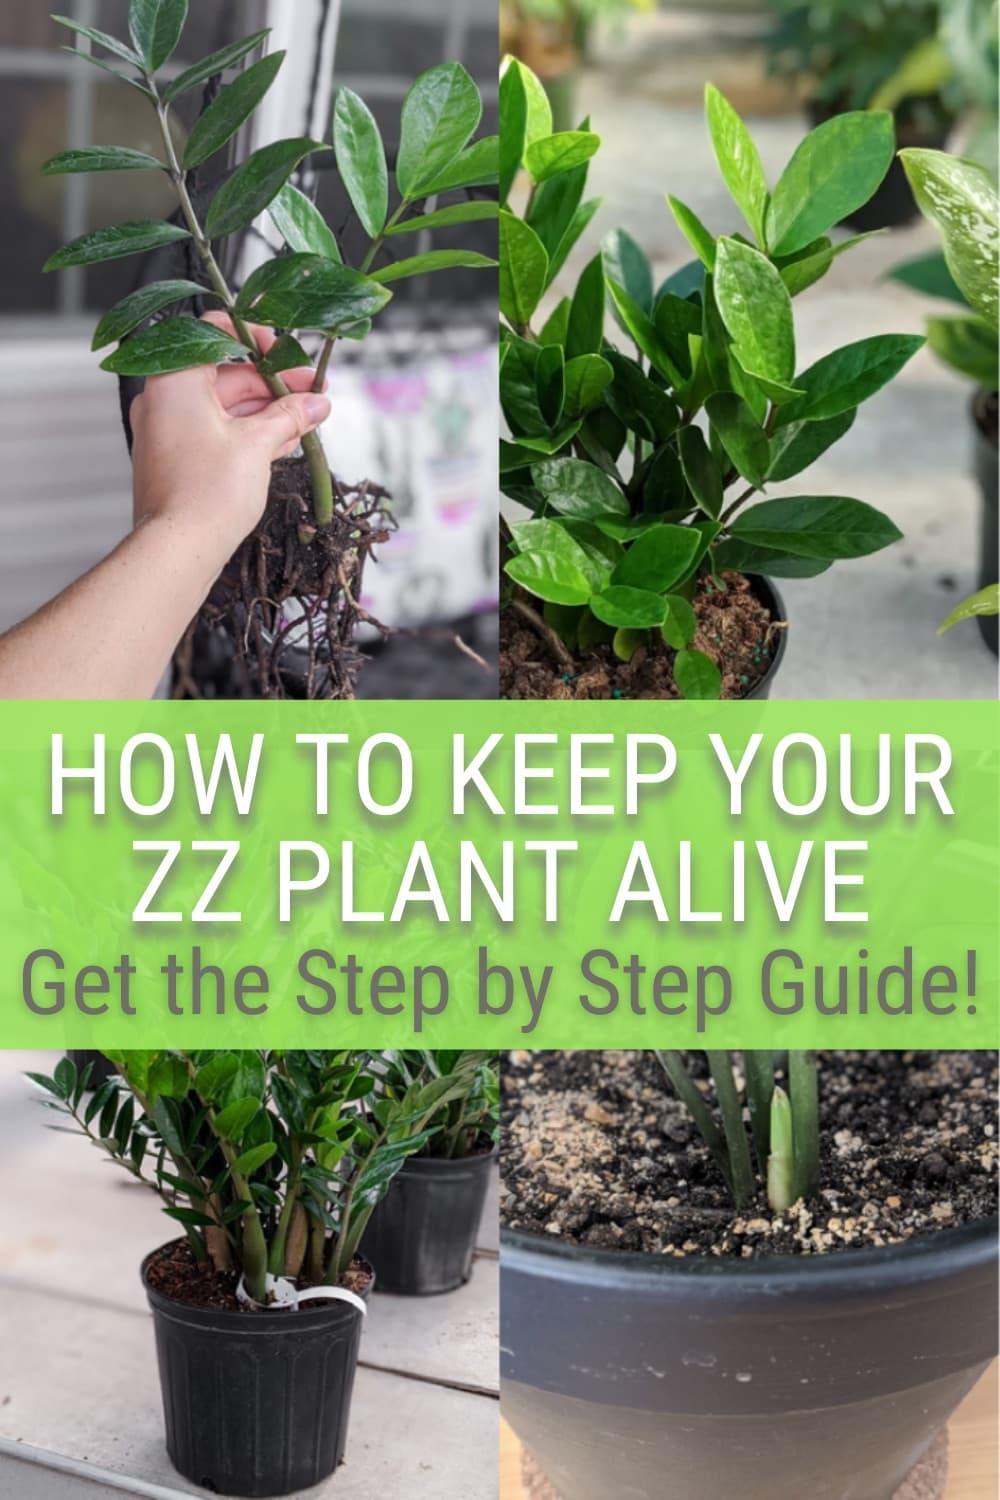 image collage of how to care for a ZZ plant with text How to keep your ZZ plant alive